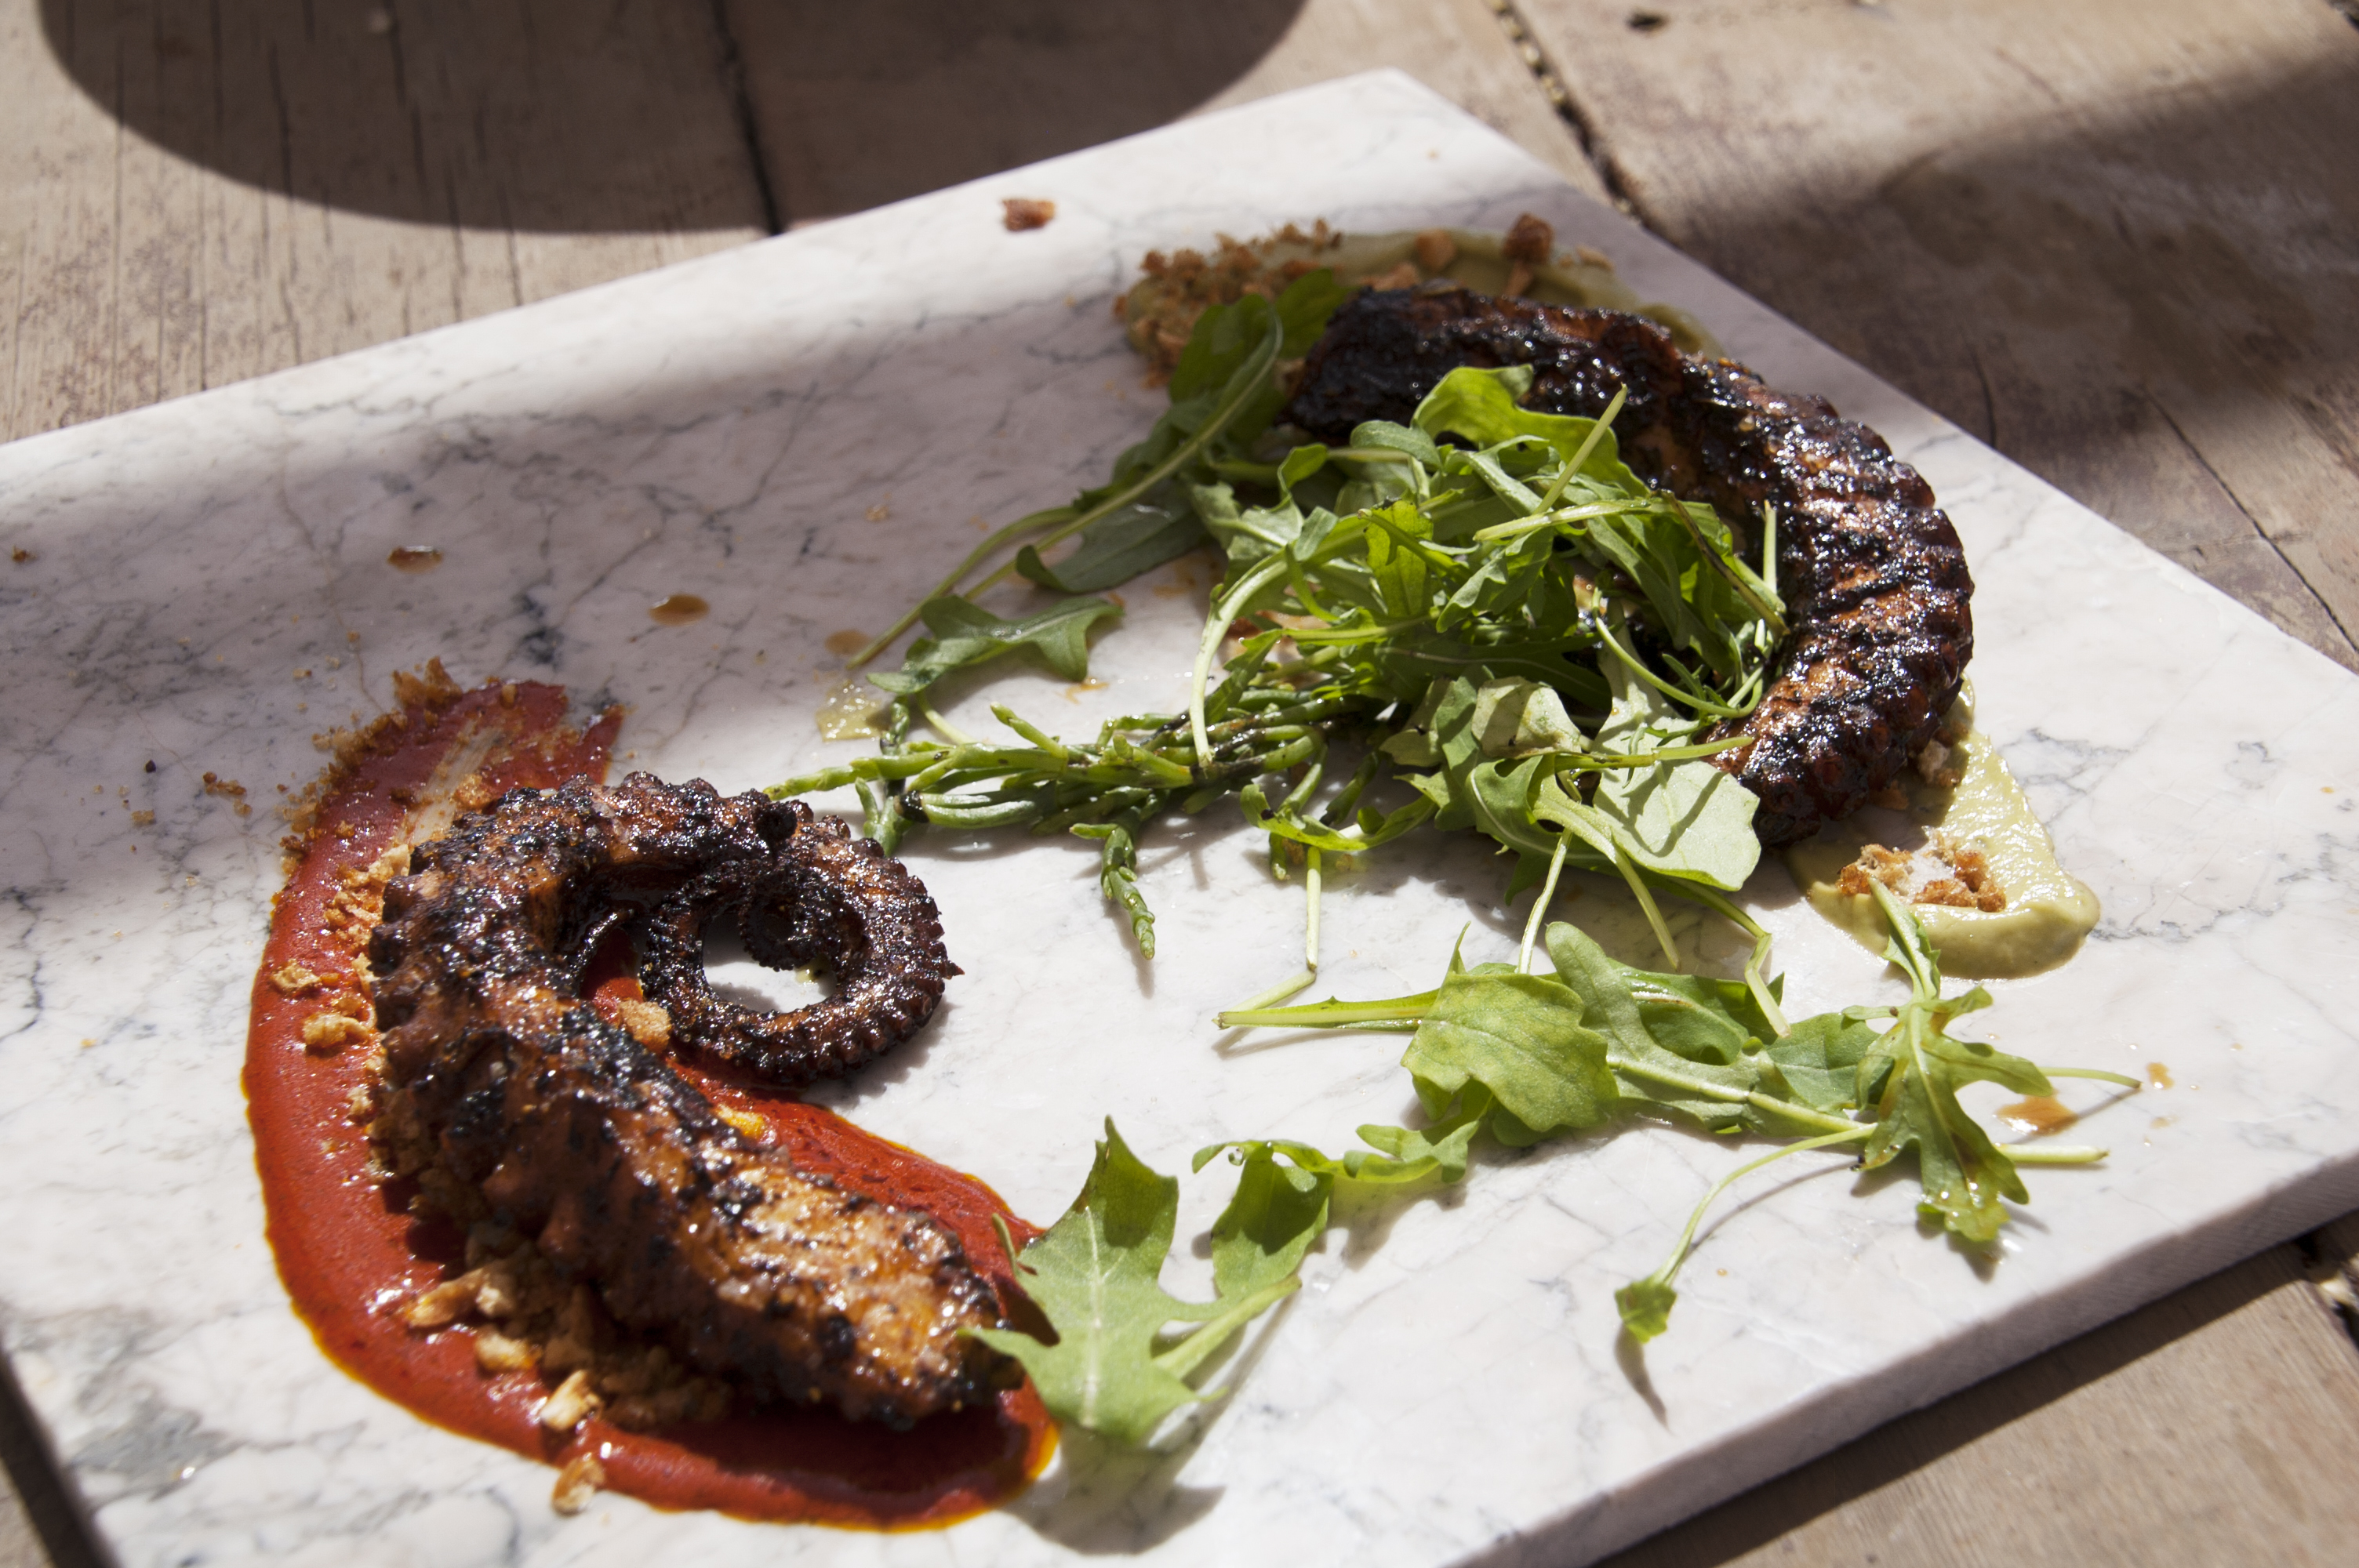 New Valle de Guadalupe Restaurants Combine Local Ingredients, Creativity, Love